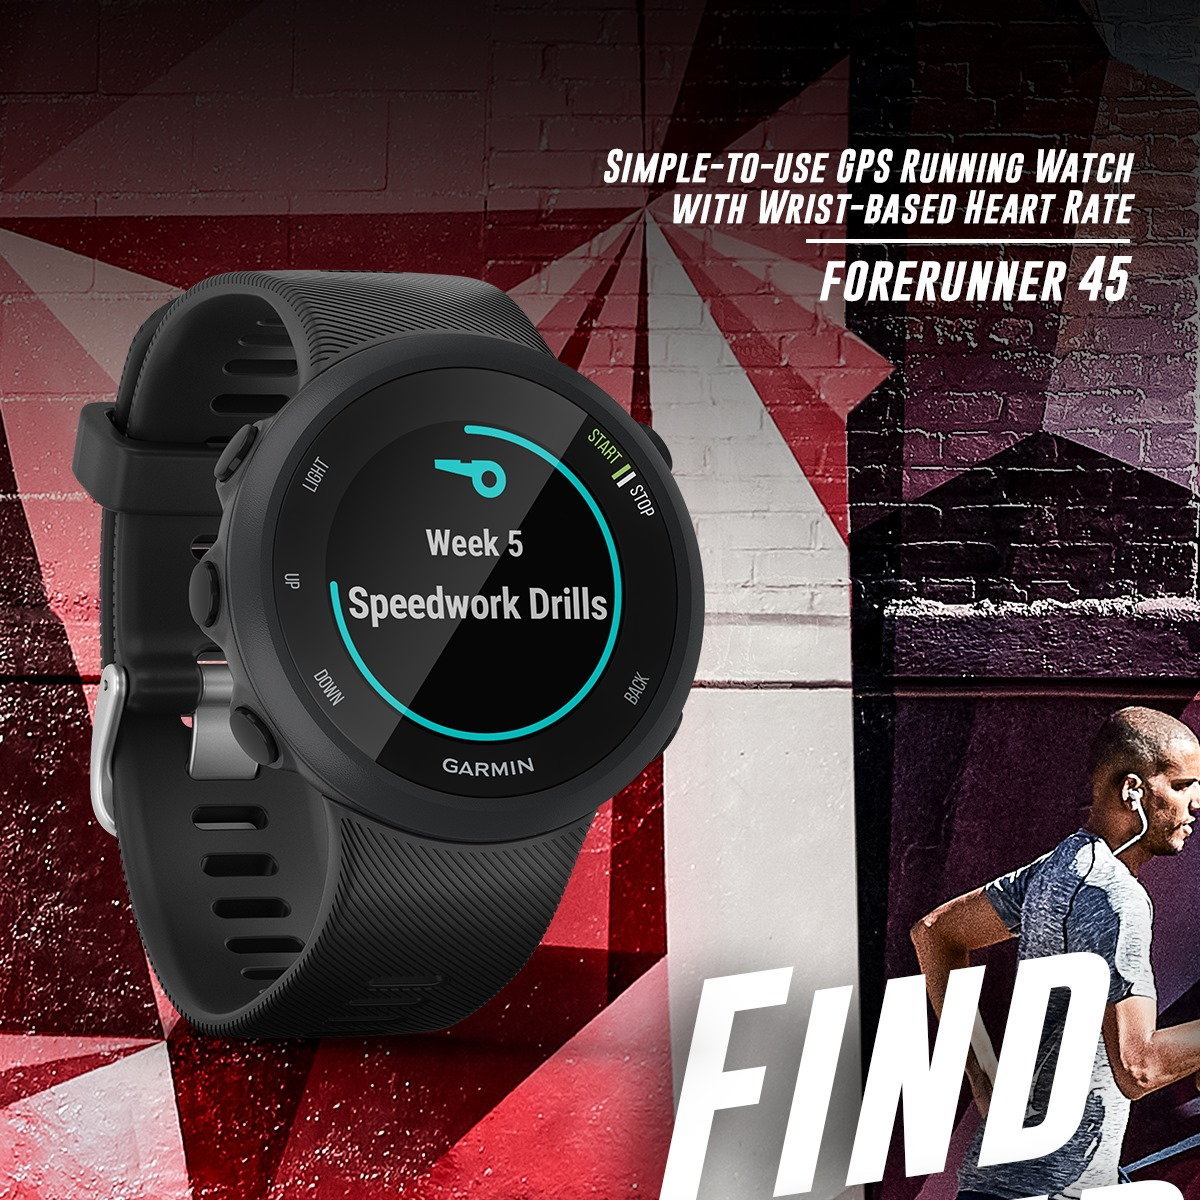 No two runners are the same, and that's exactly what we keep in mind with our running watches